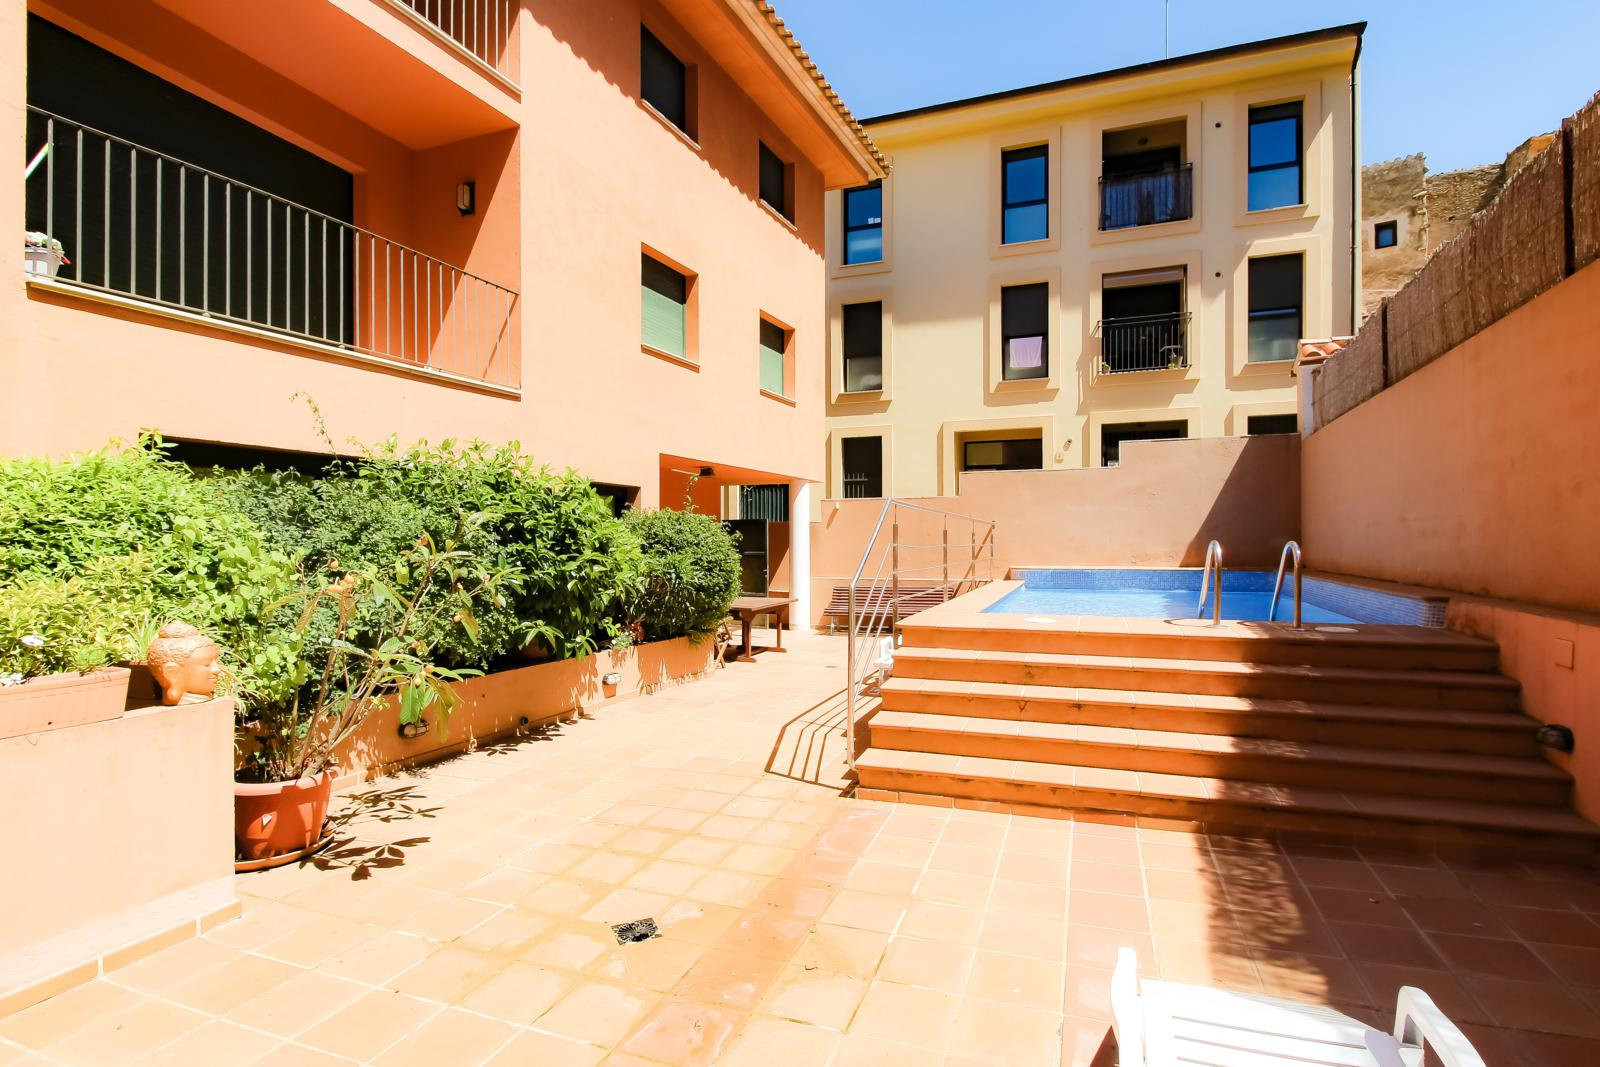 SANT JOSEP apartamento en pleno casco antiguo de Begur dispone de terraza piscina comunitaria y plaza de aparcamiento, Apartment in Begur, on the Costa Brava, Spain  with communal pool for 4 persons.....